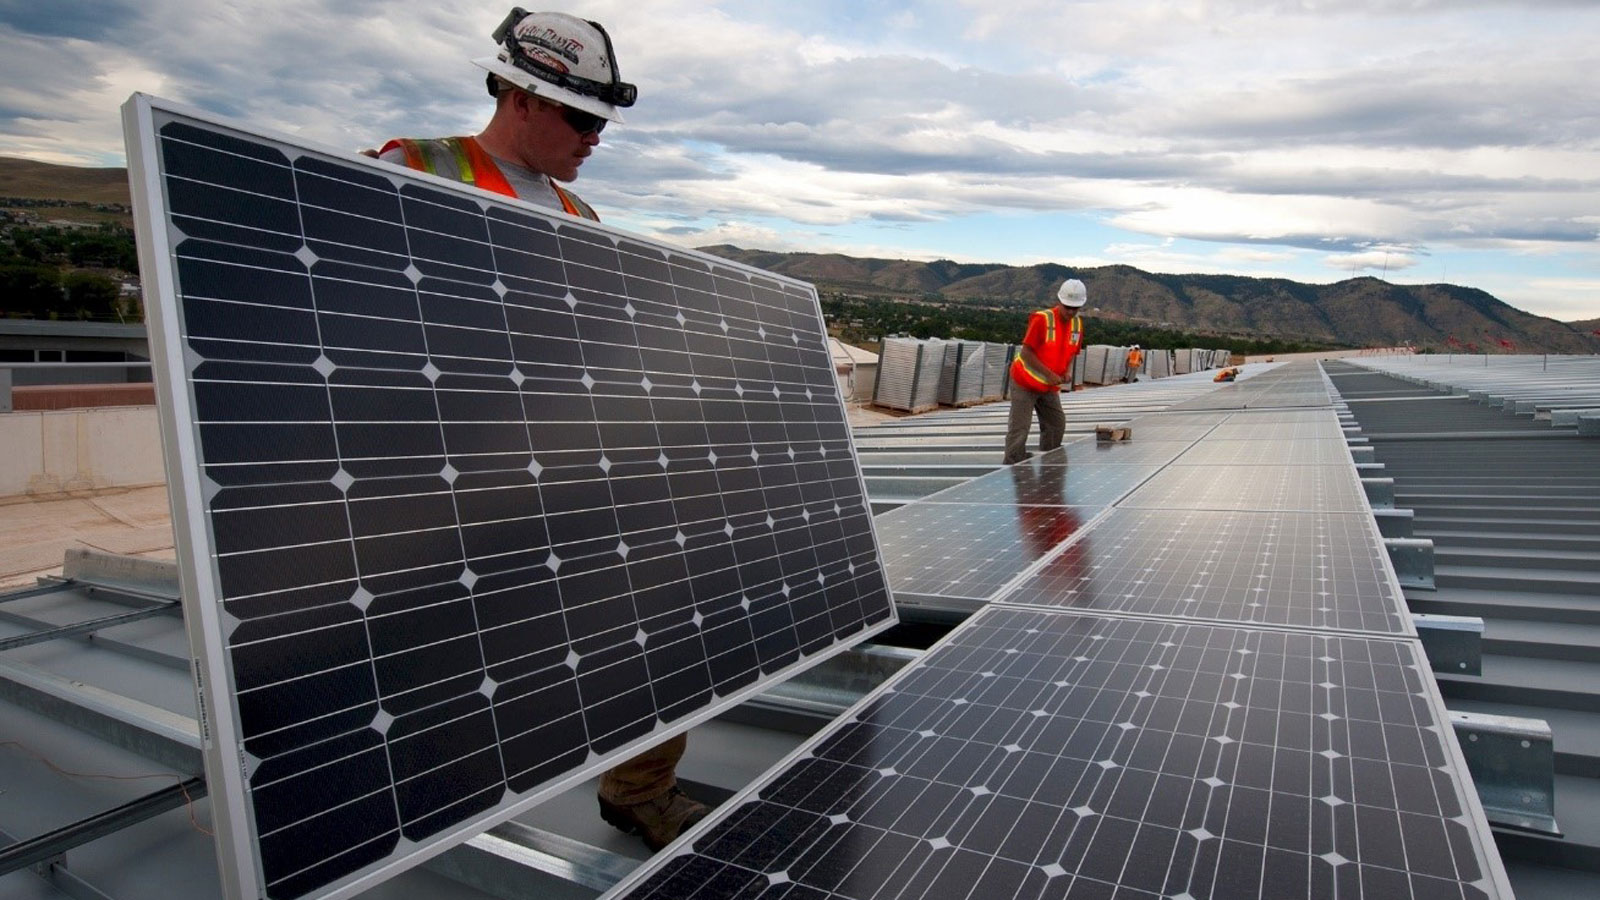 """<h3>SOLAR ENERGY</h3><h5>America produces over <span class=""""slideshowHighlight"""">40 times more solar power</span> than it did in 2009, enough to power more than 9 million average American homes.</h5>"""